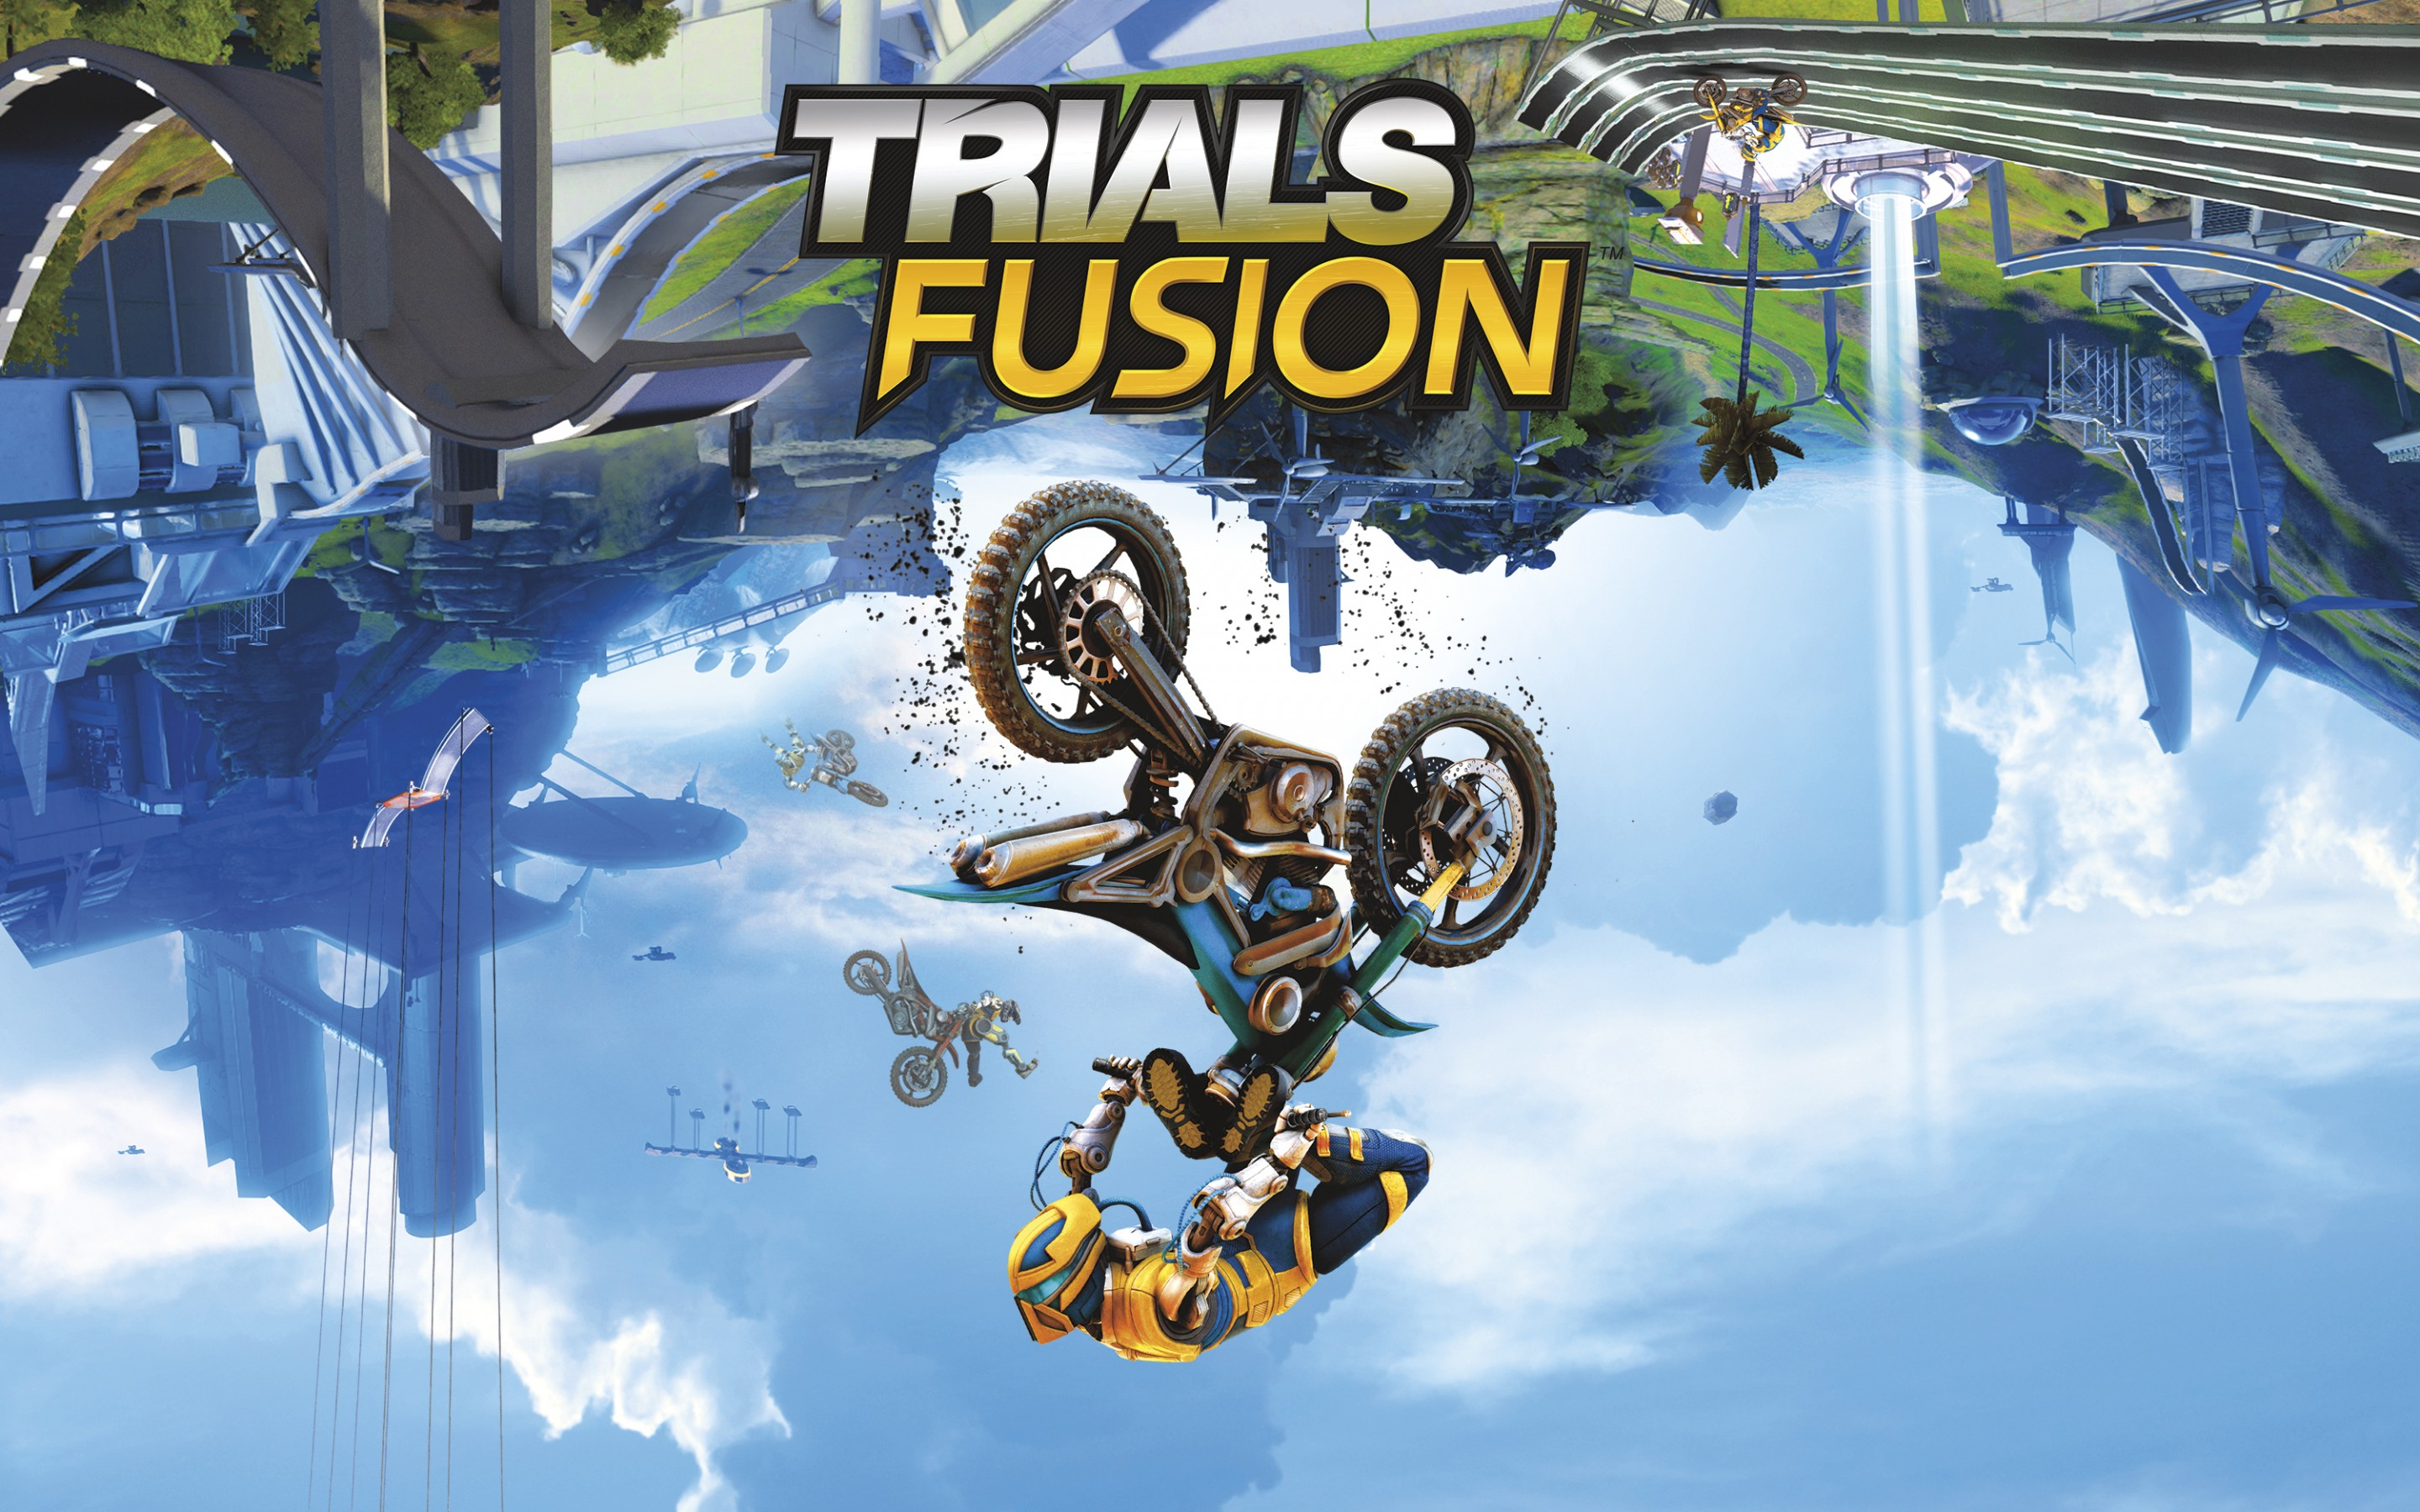 HD Wallpapers Trials Fusion Game